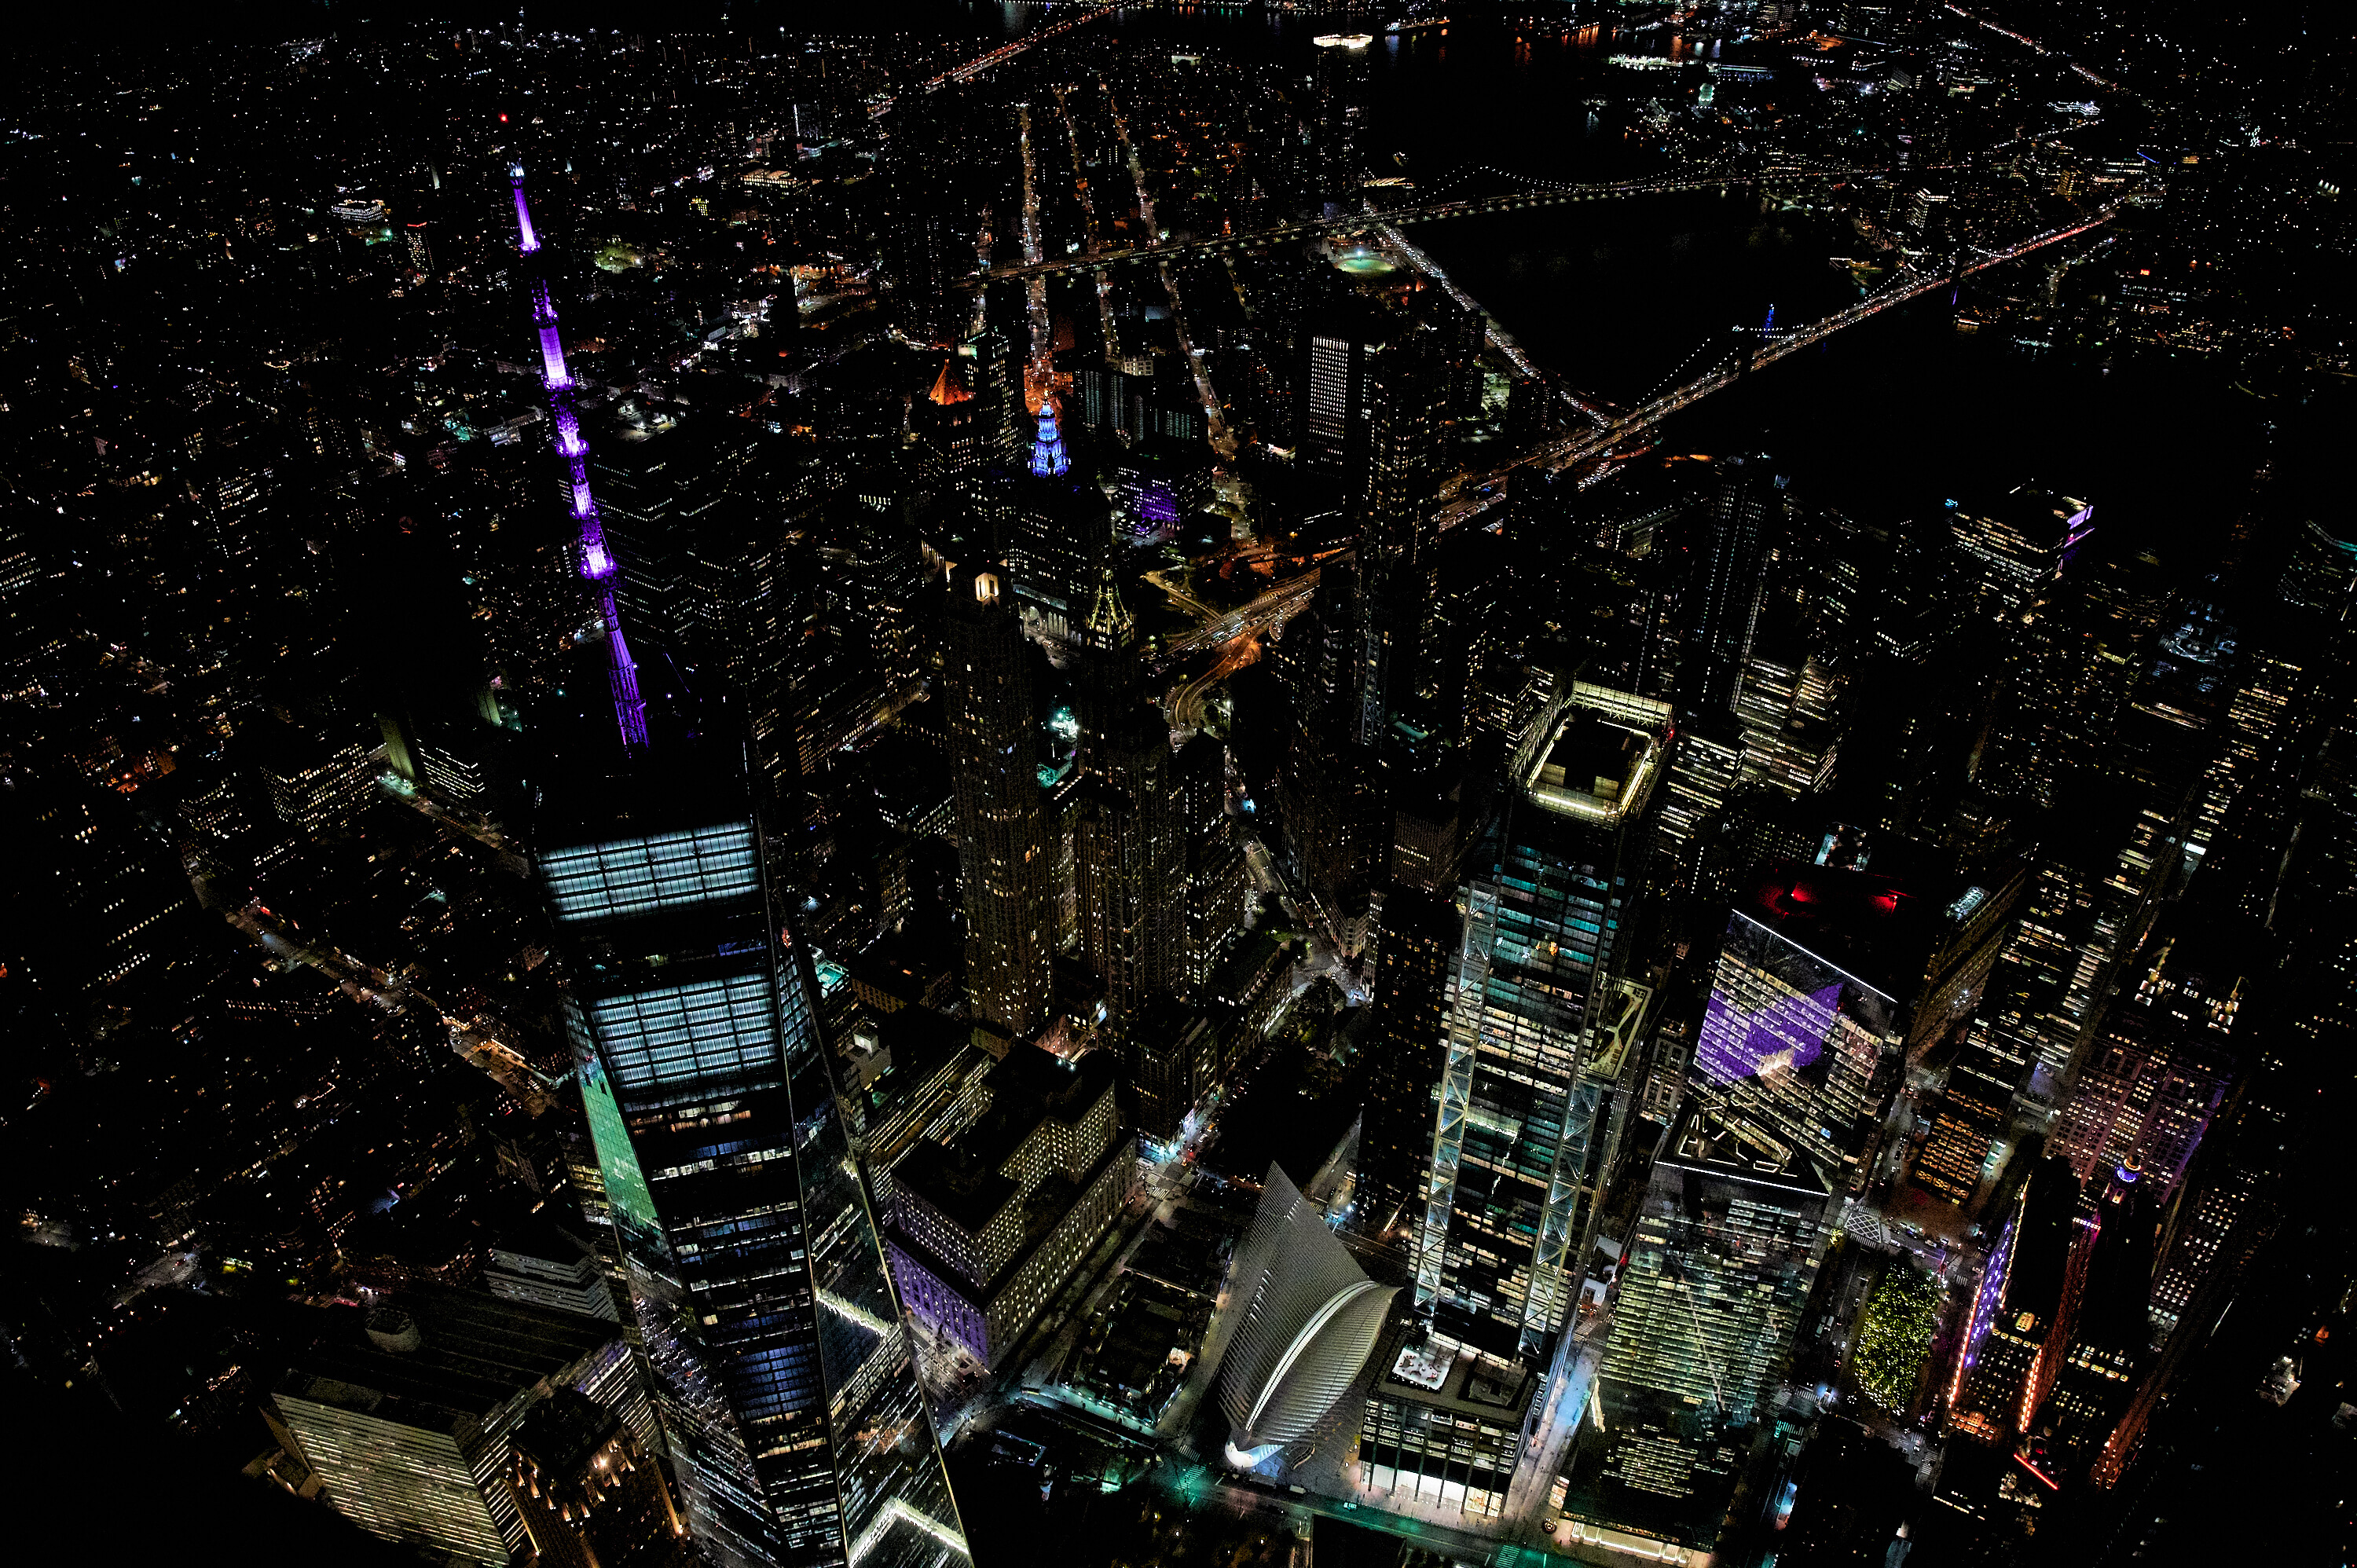 Aerial Photography and Drone in New York